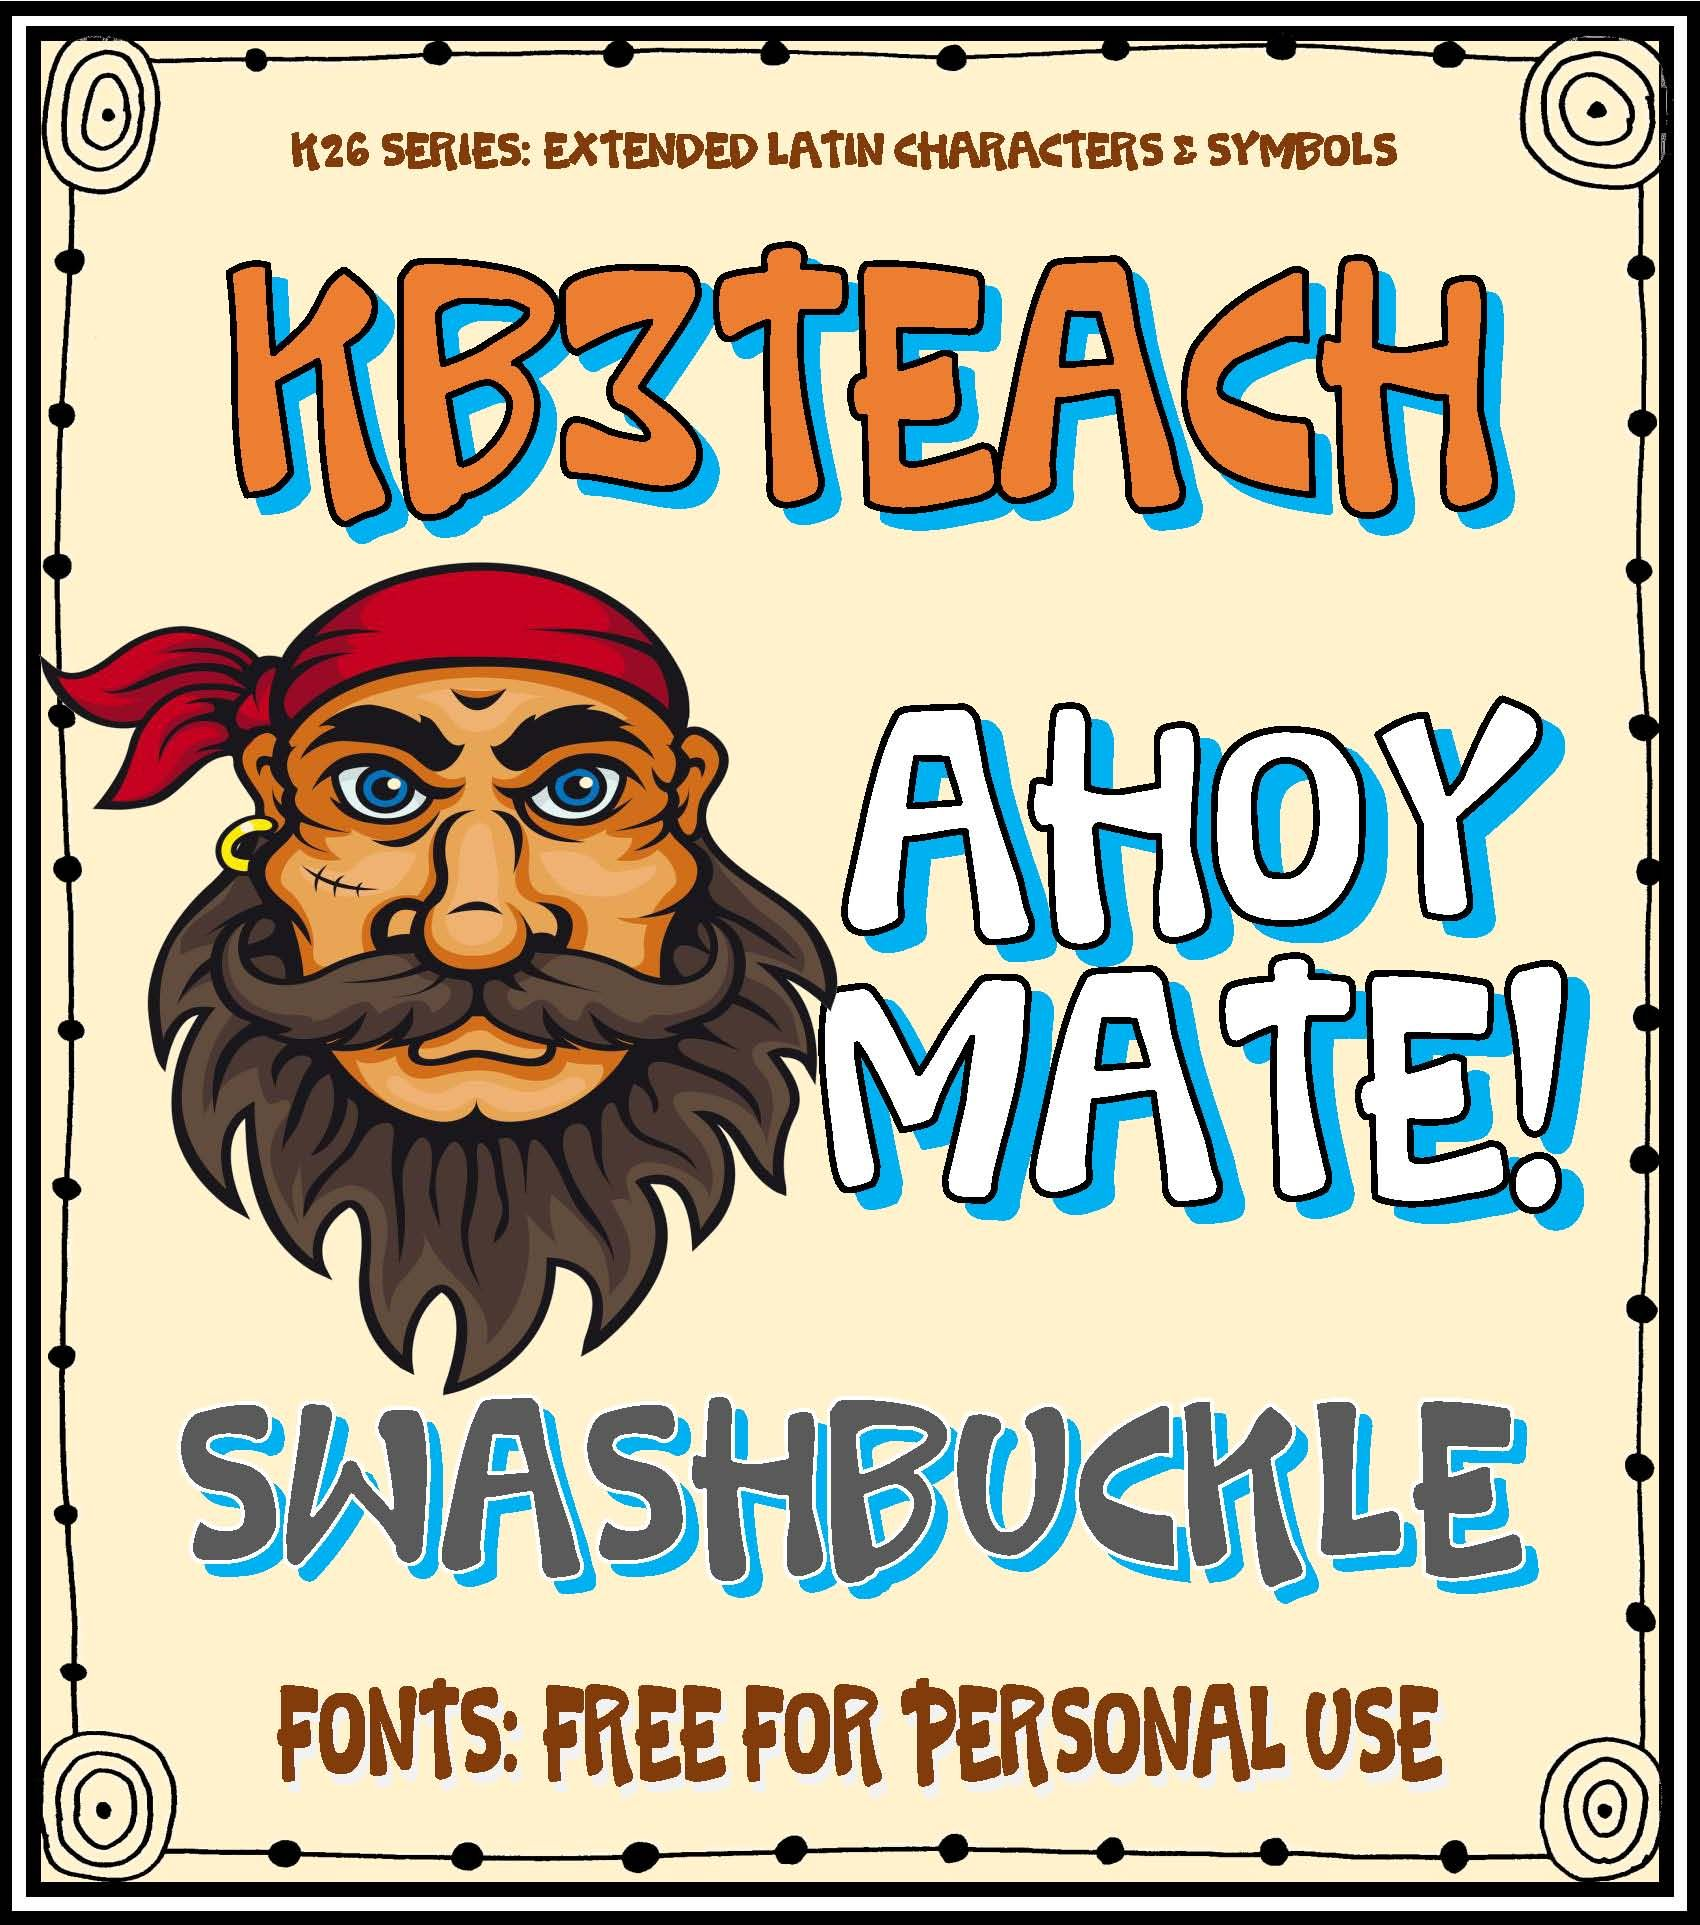 Free Fonts Kb3 Swashbuckle Personal Use K26 Series